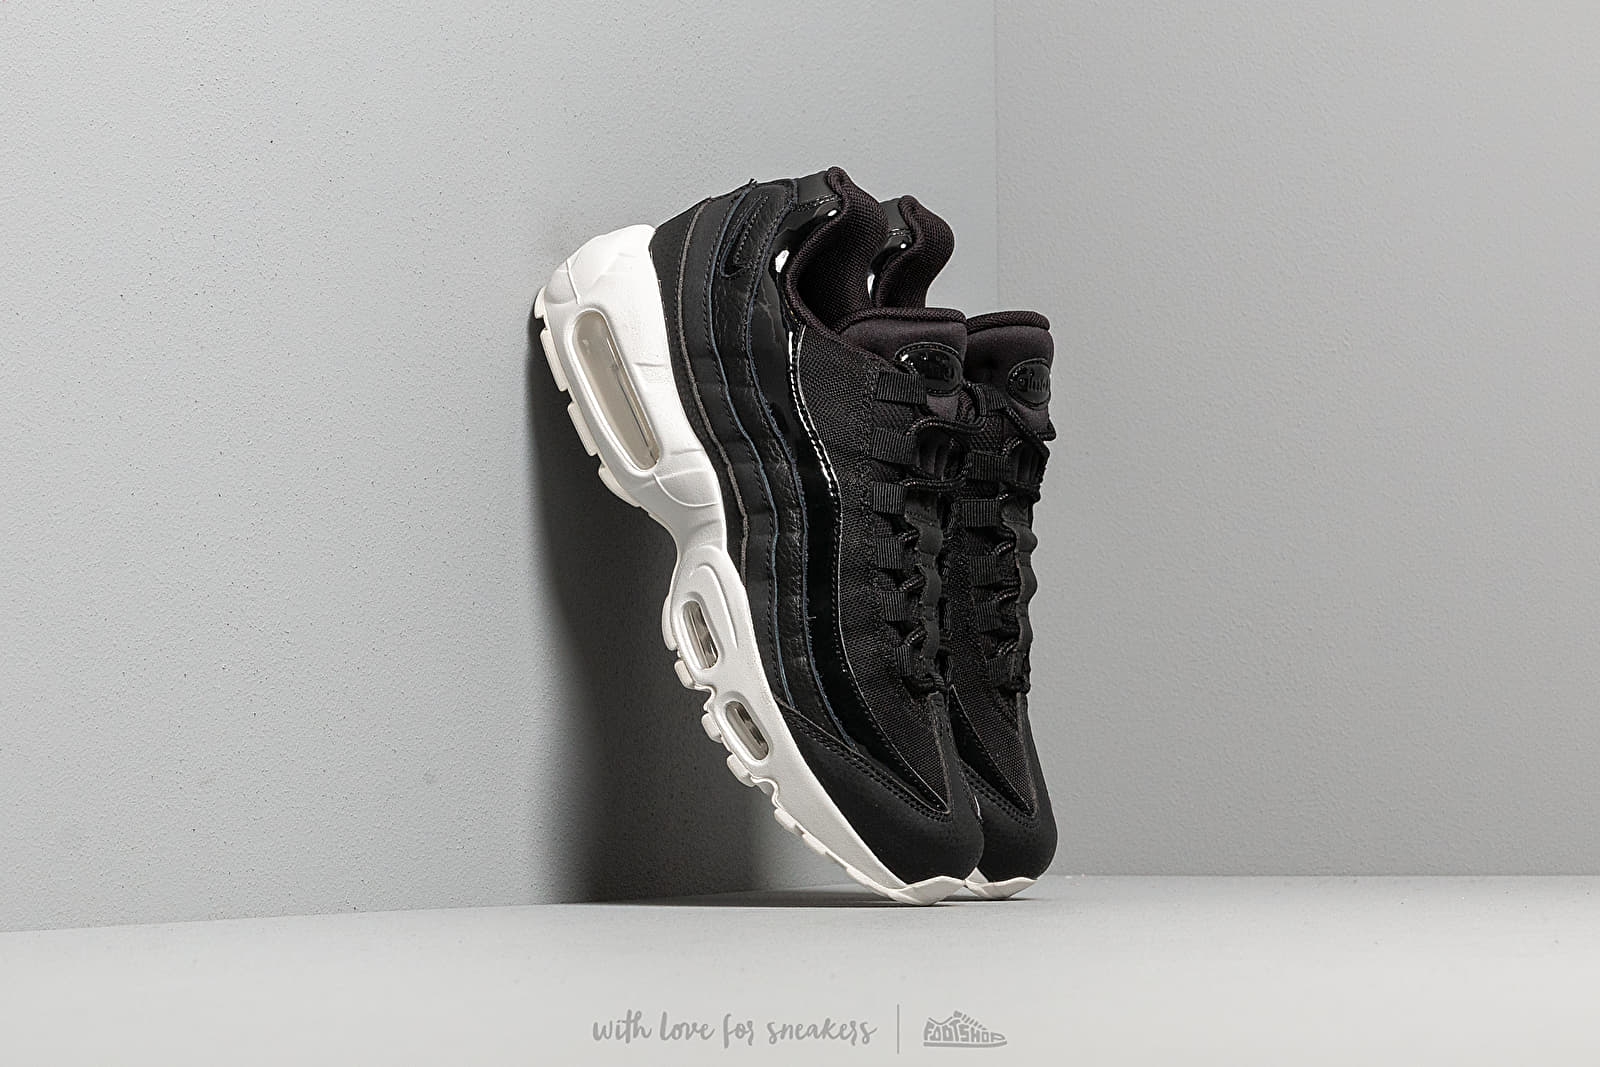 newest 5194d 21eb4 Nike Wmns Air Max 95 Se Black  Black-Summit White-Platinum Tint at